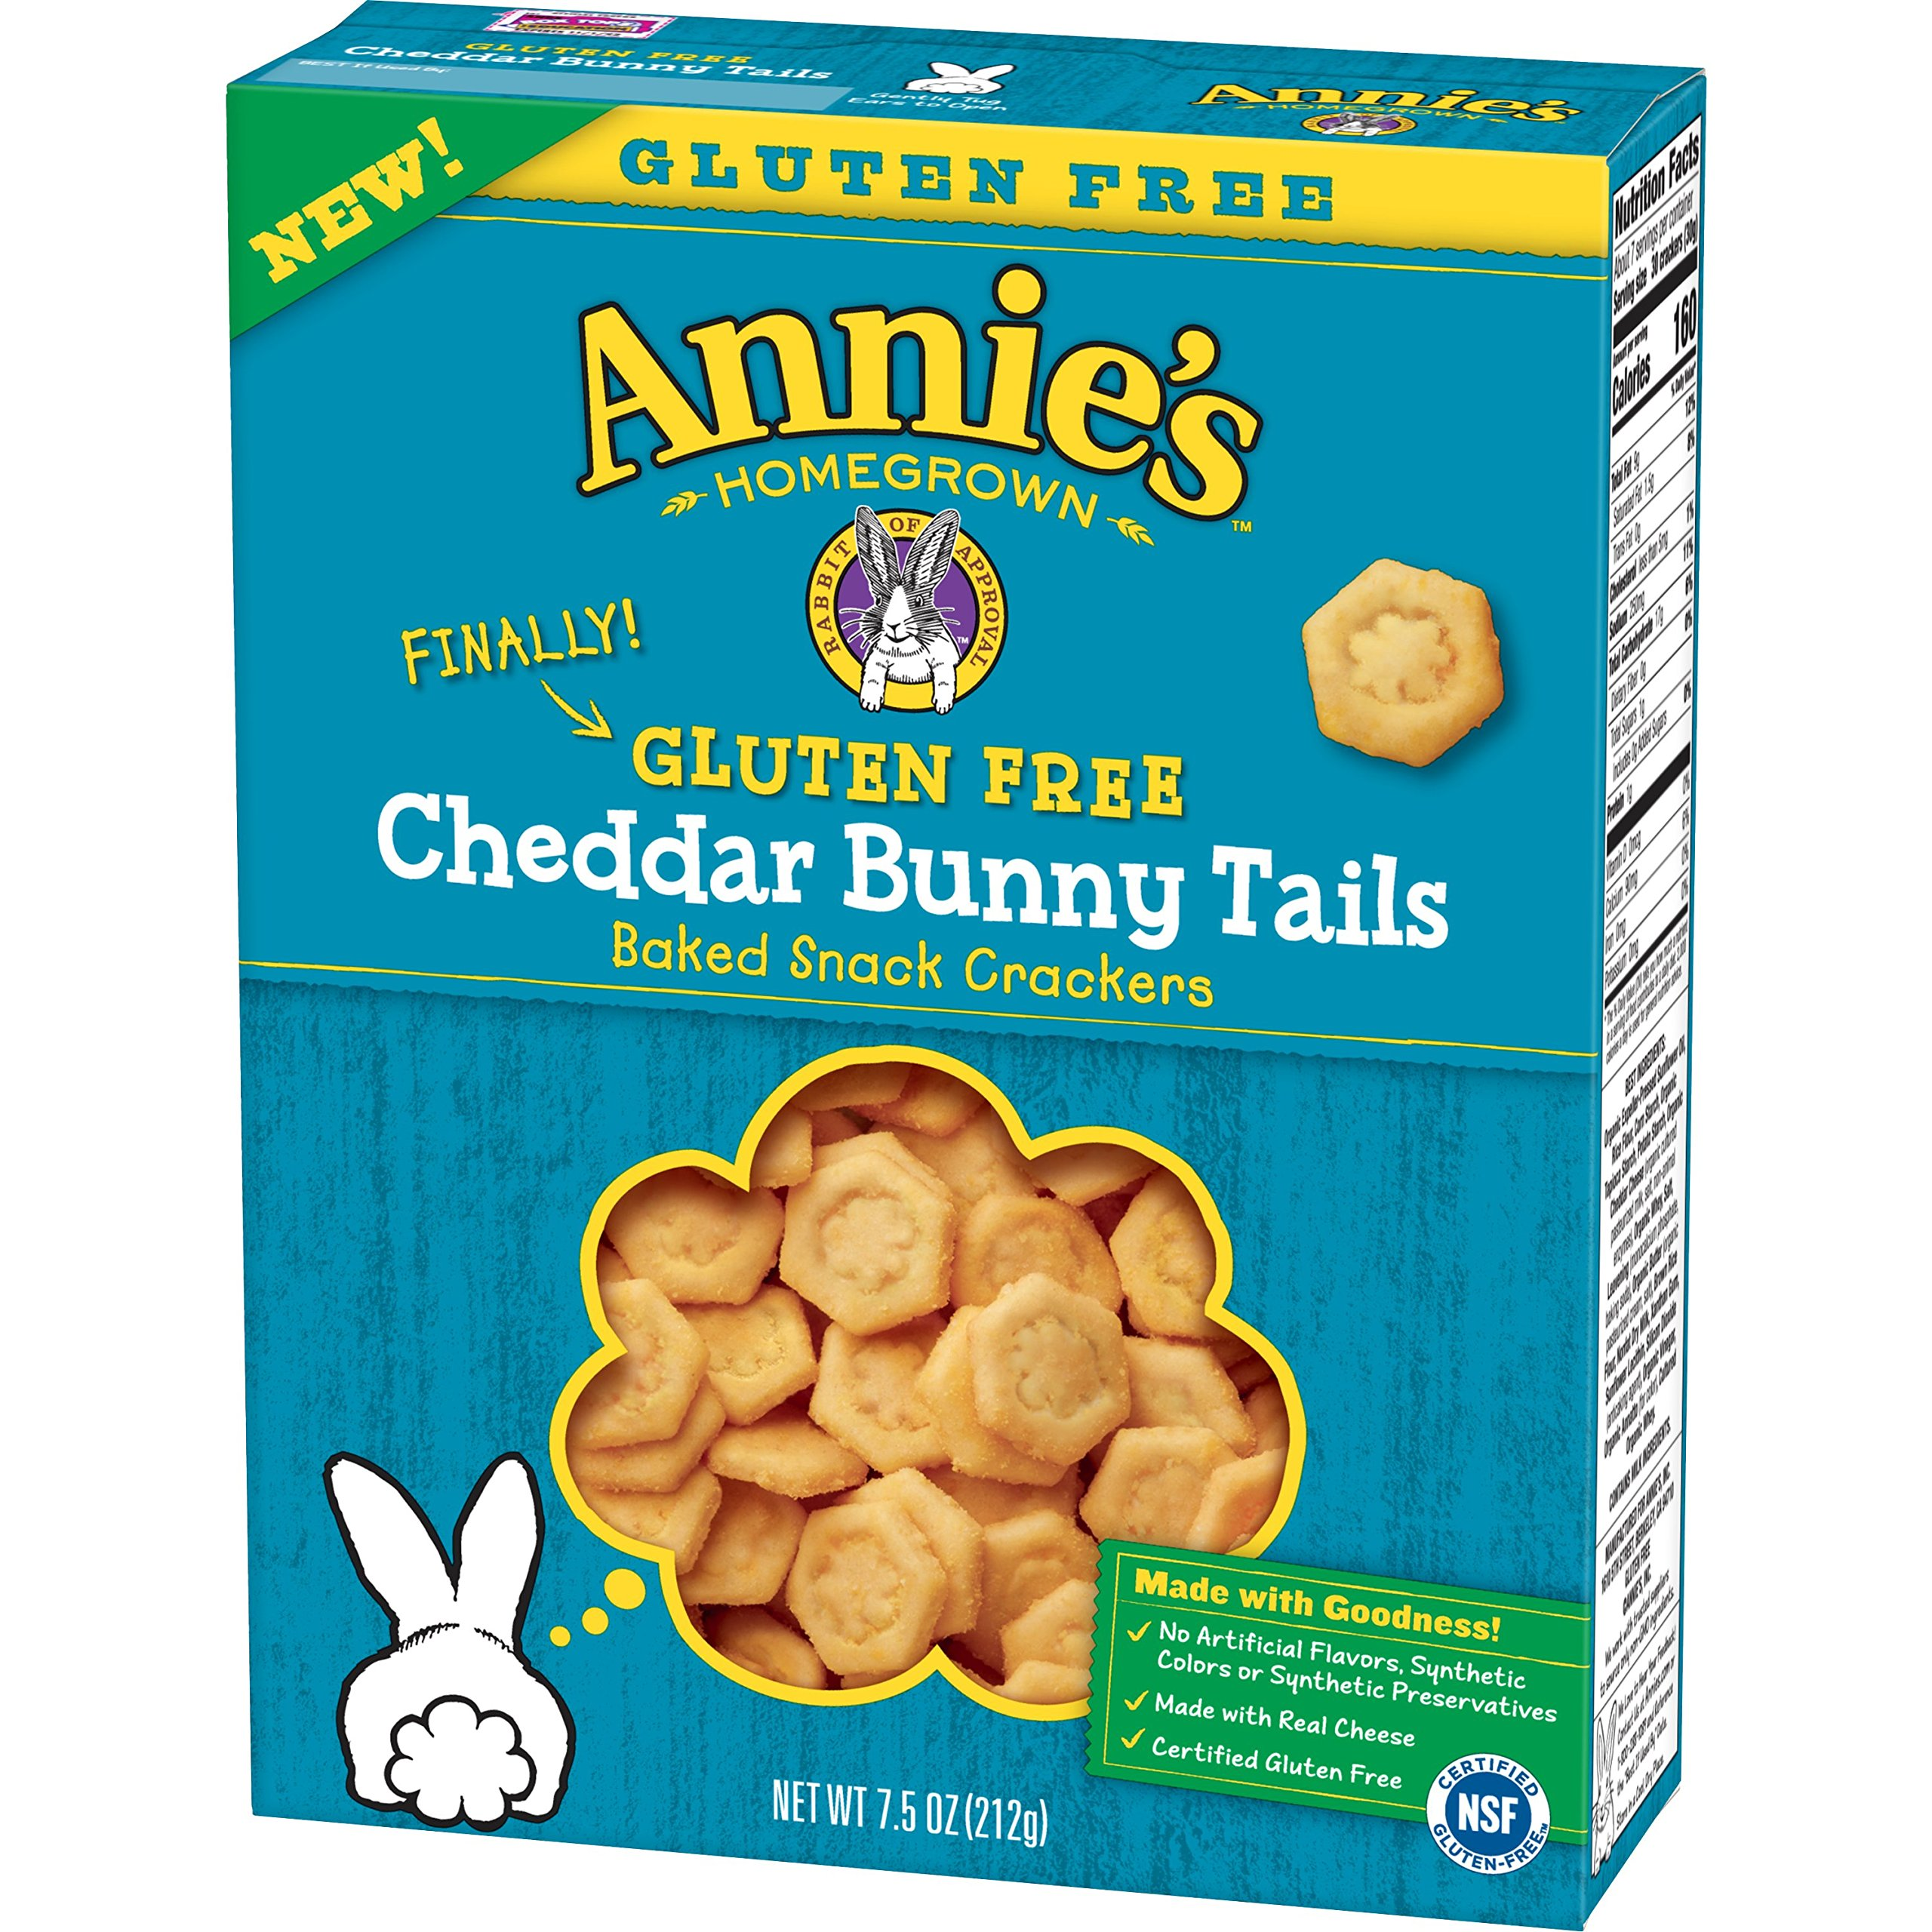 Annie's Homegrown Gluten Free Cheddar Bunny Tails,, 7.5 Oz (Pack of 12) by Annie's Homegrown